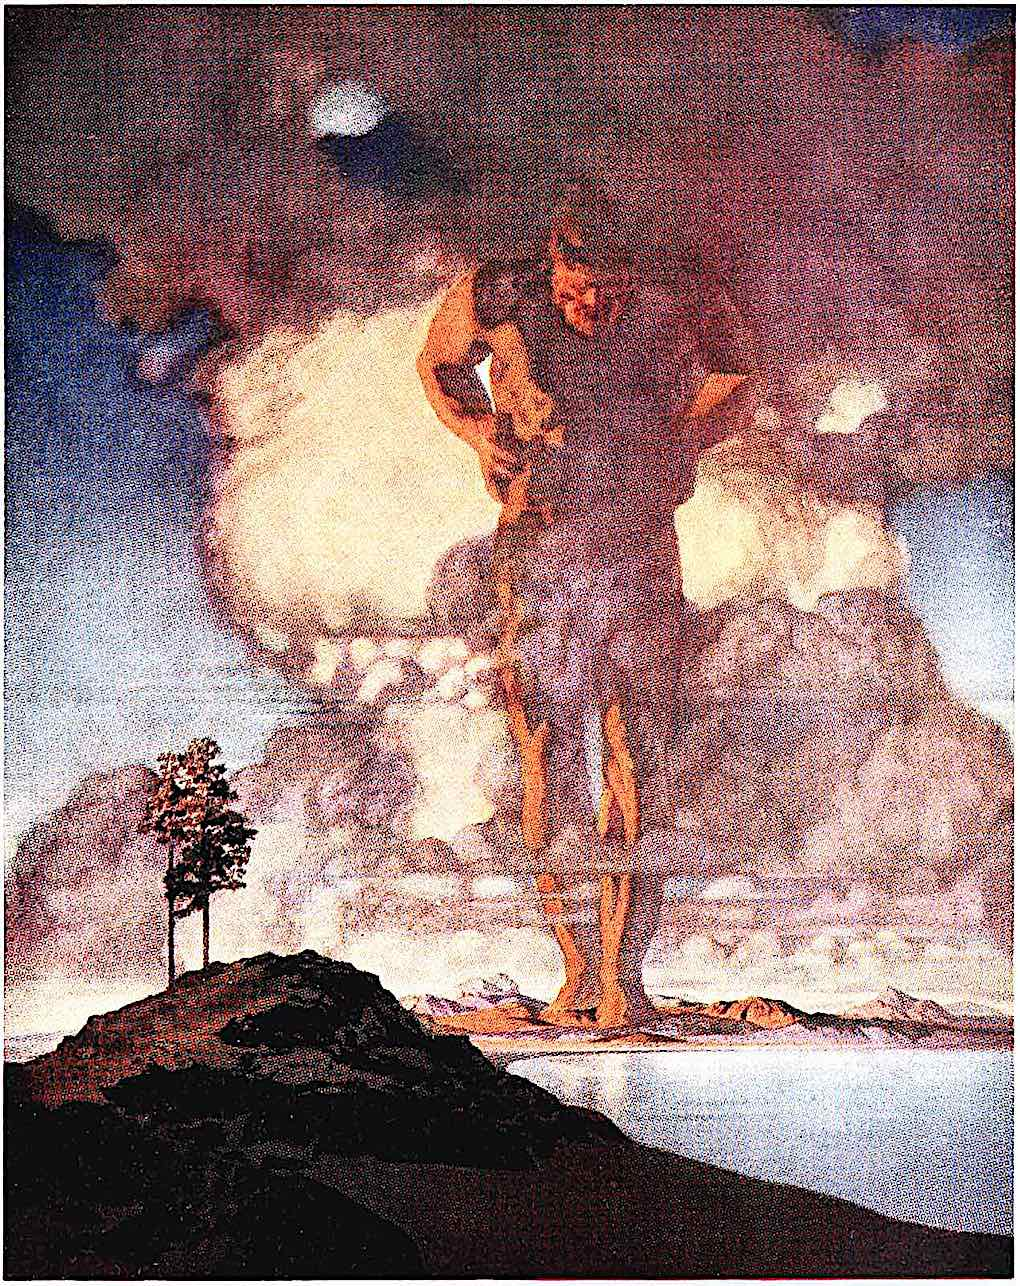 a 1910 Maxfield Parrish giant in color